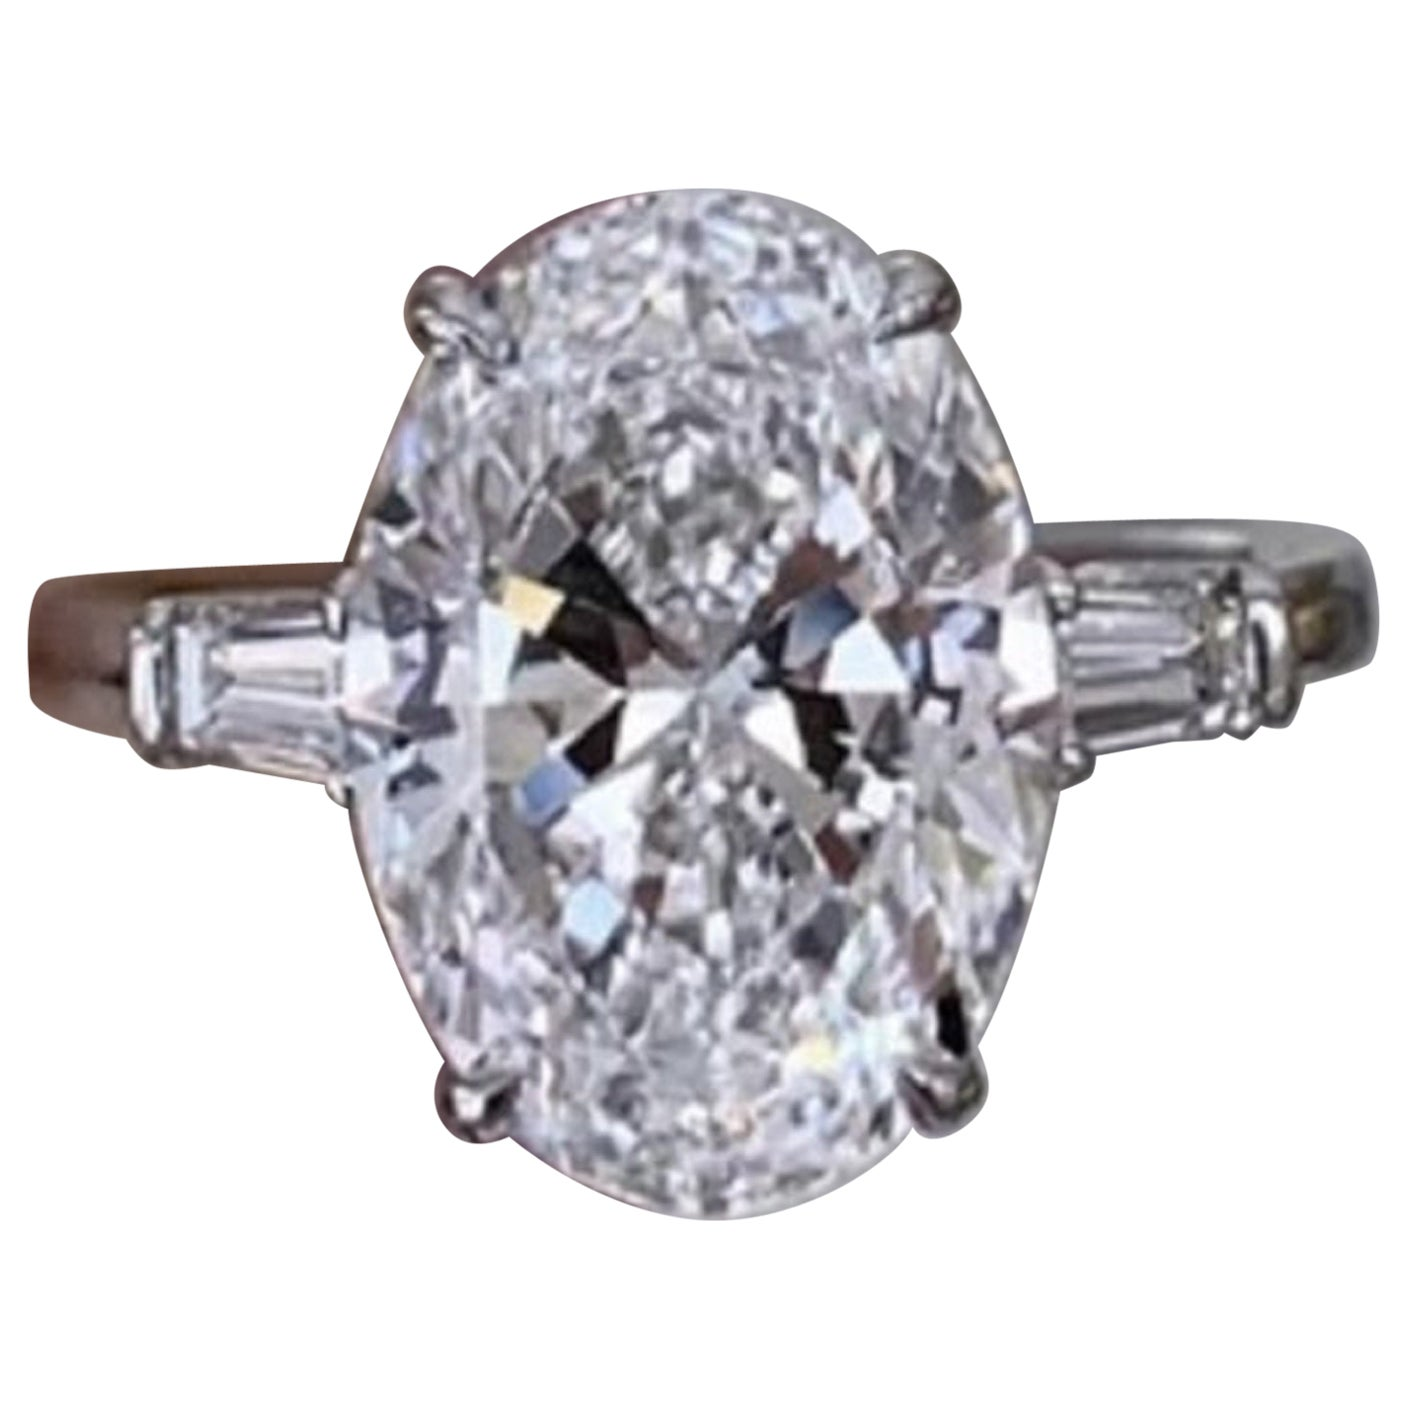 FLAWLESS D Color GIA Certified 6.65 Carat Oval Cut White Diamond Ring